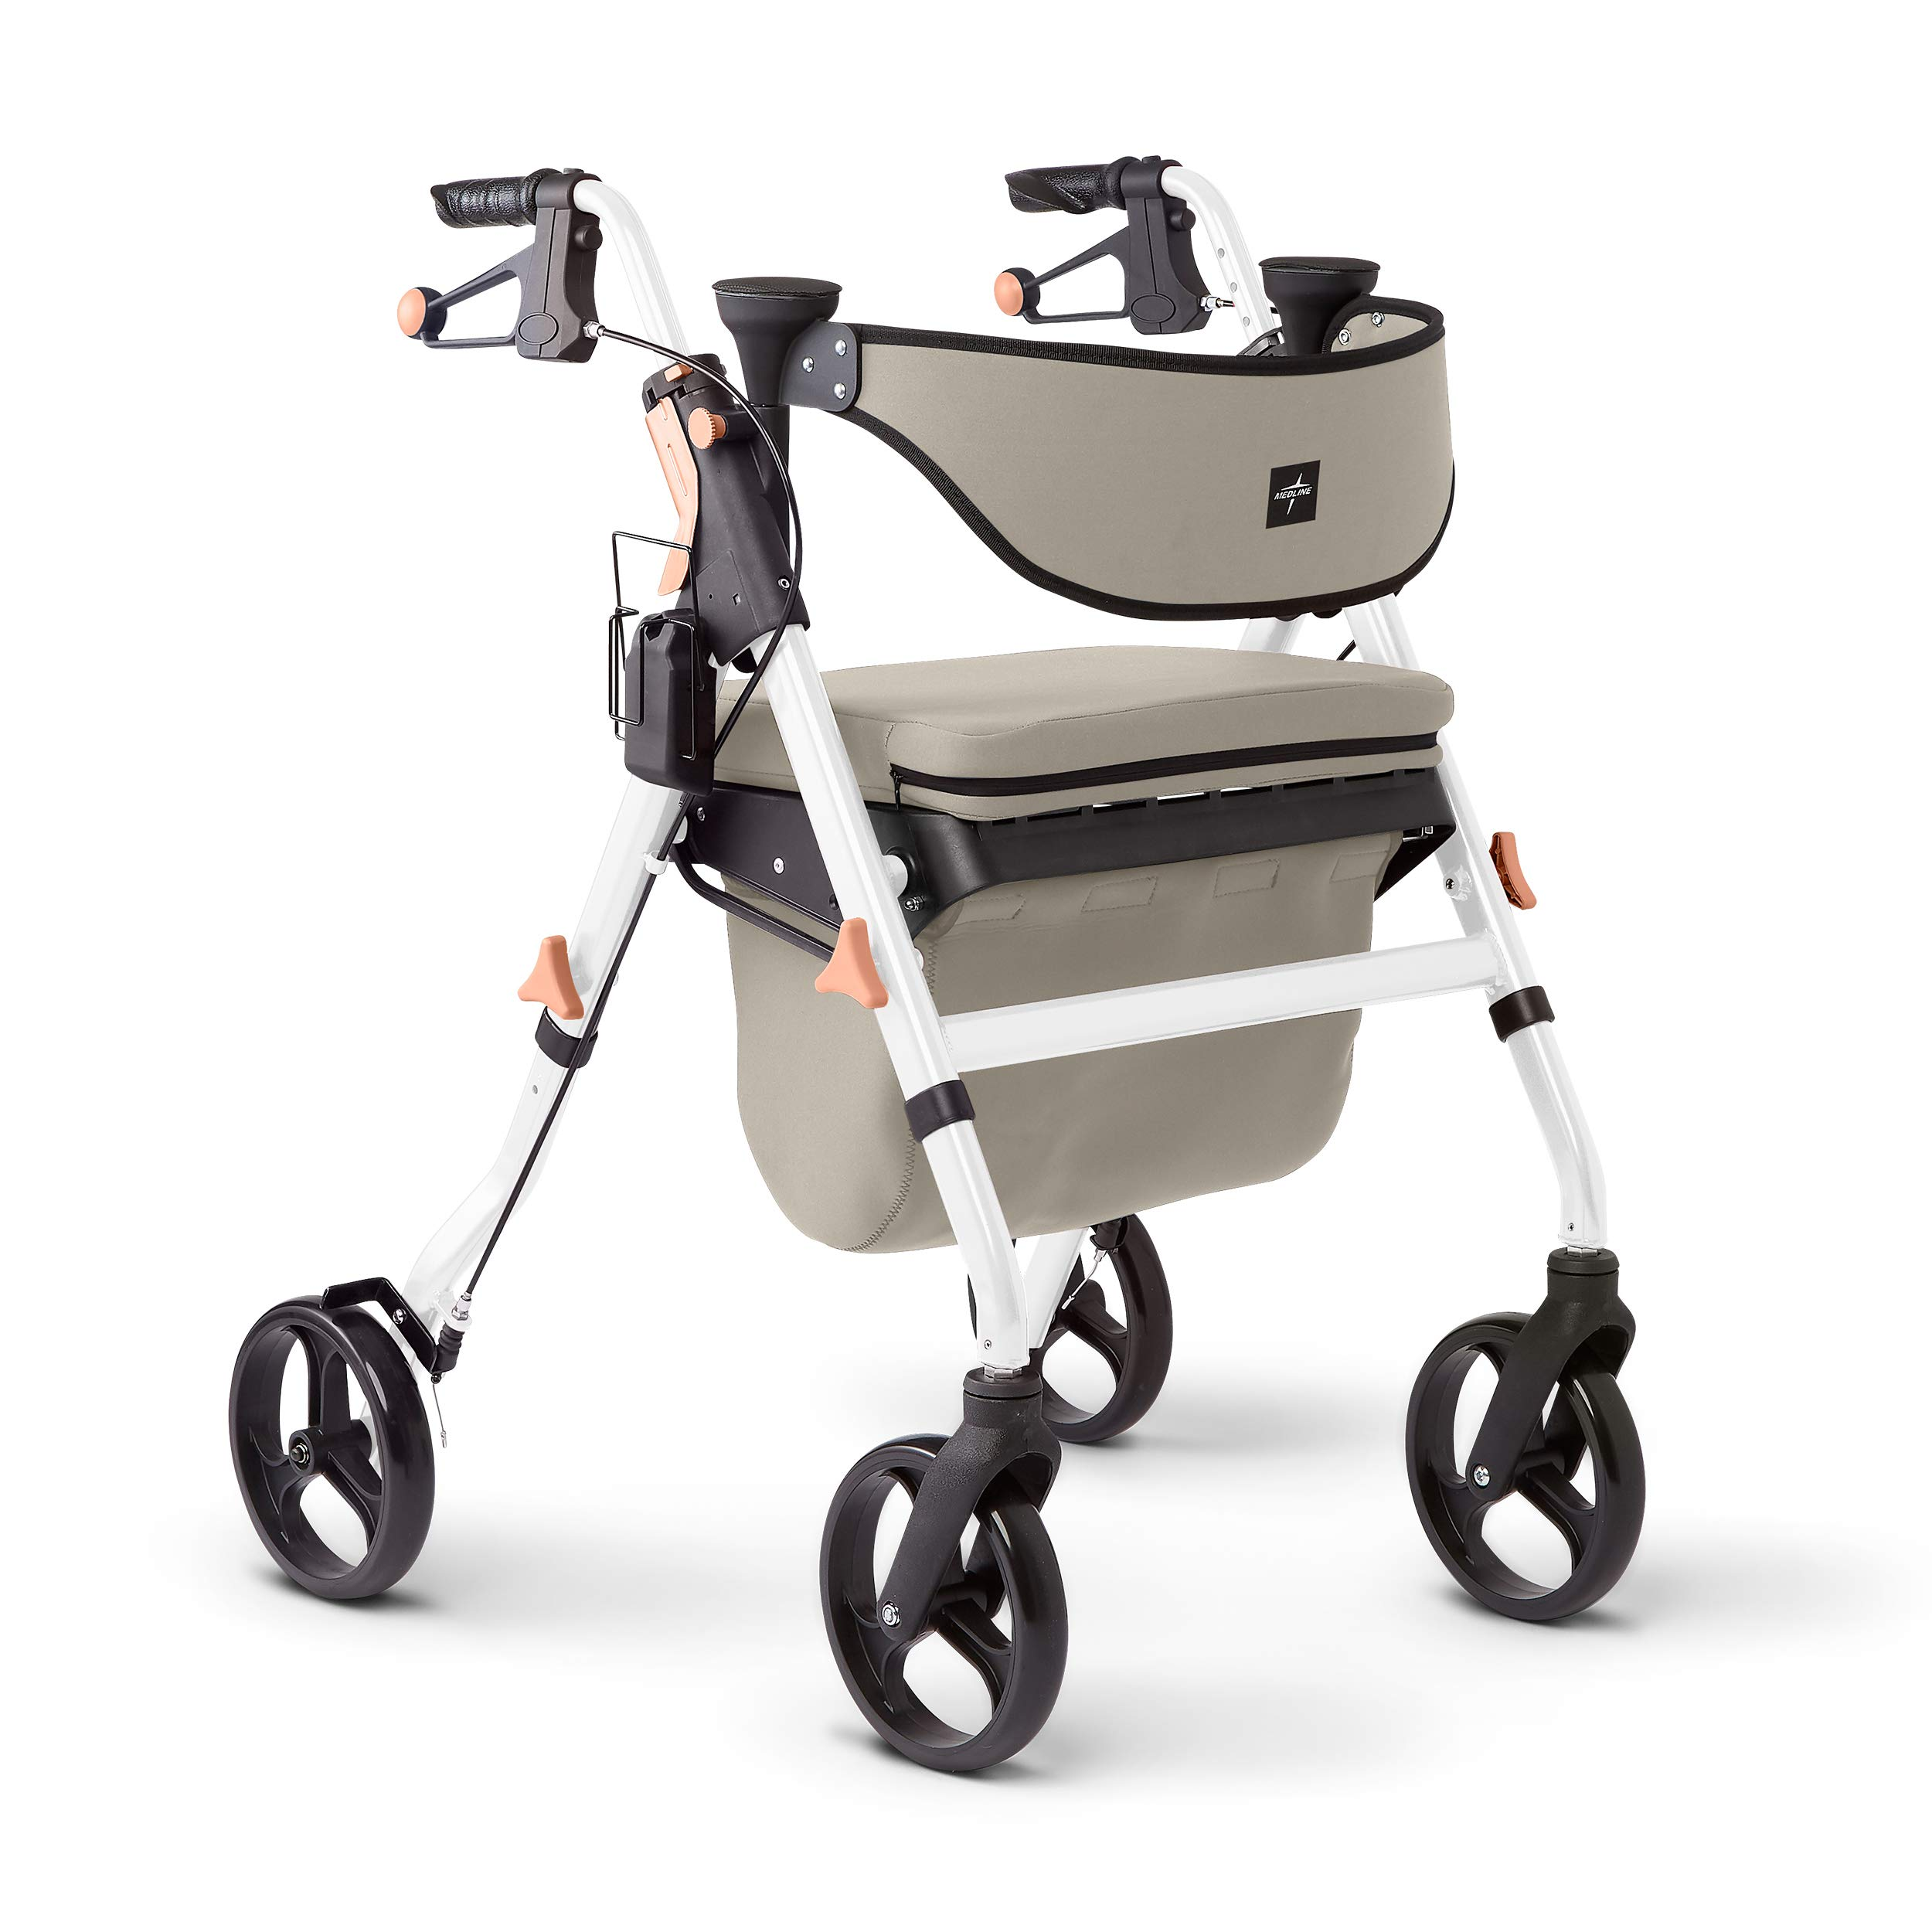 Medline Premium Empower Rollator Walker with Seat, Comfort Handles and Thick Backrest, Folding Walker for Seniors, Microban Antimicrobial Protection, 8'' Wheels, White Frame